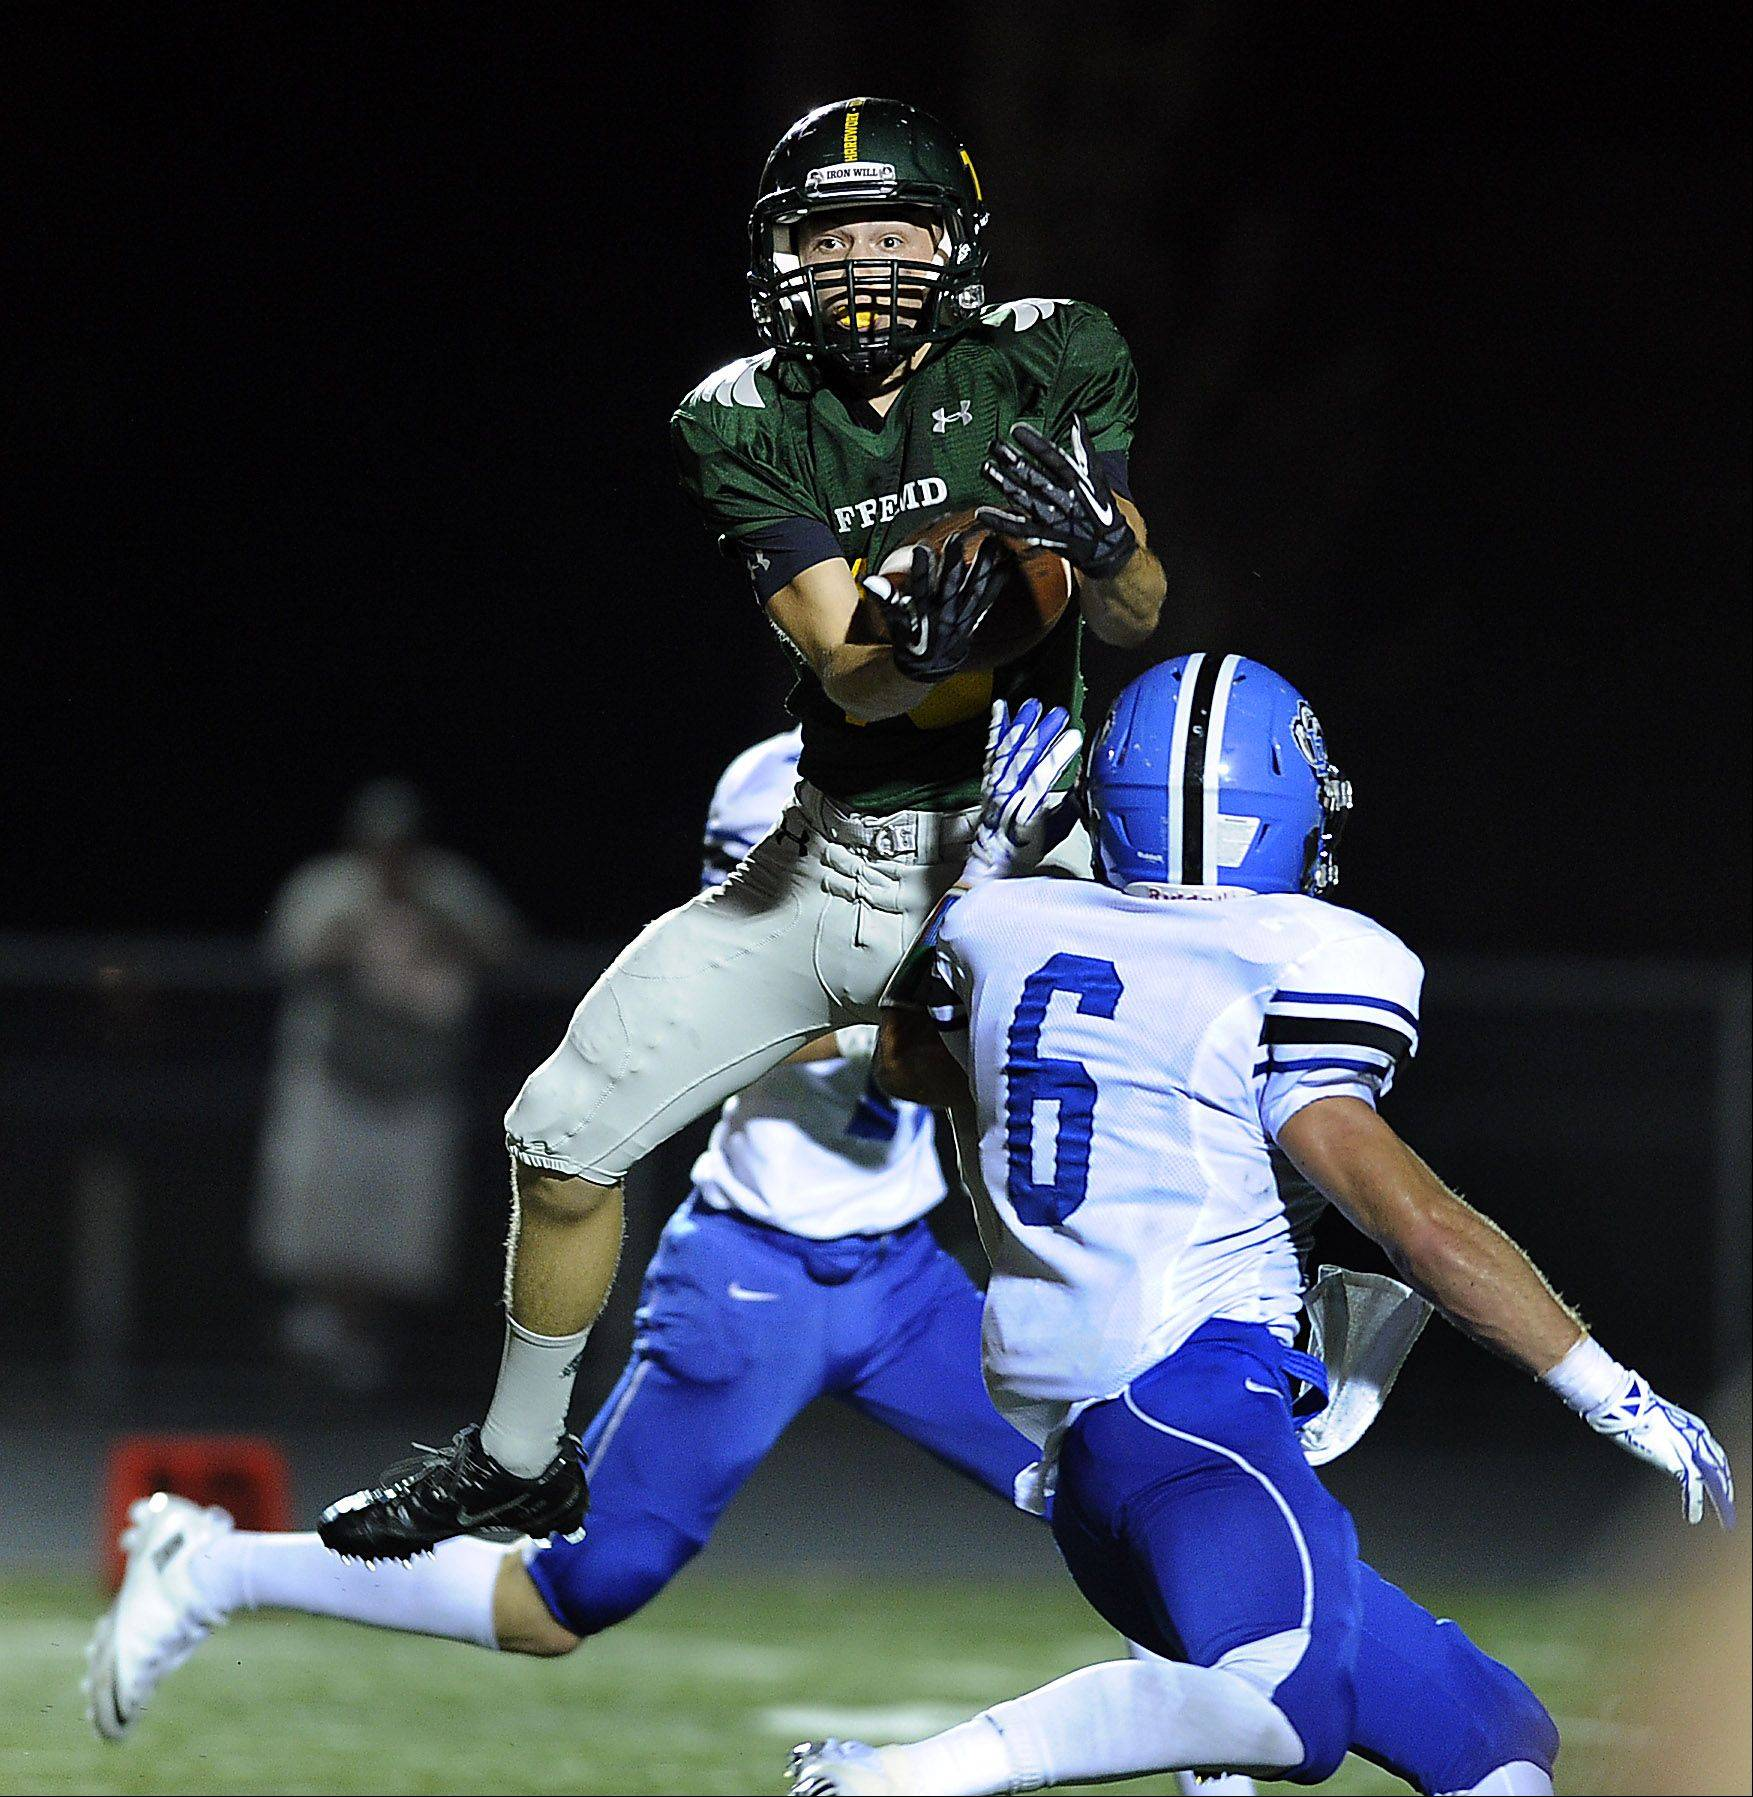 Fremd's Anthony Halvorsen hauls in a pass in the first quarter . Lake Zurich's Sean Lynch attempts to break up the play.